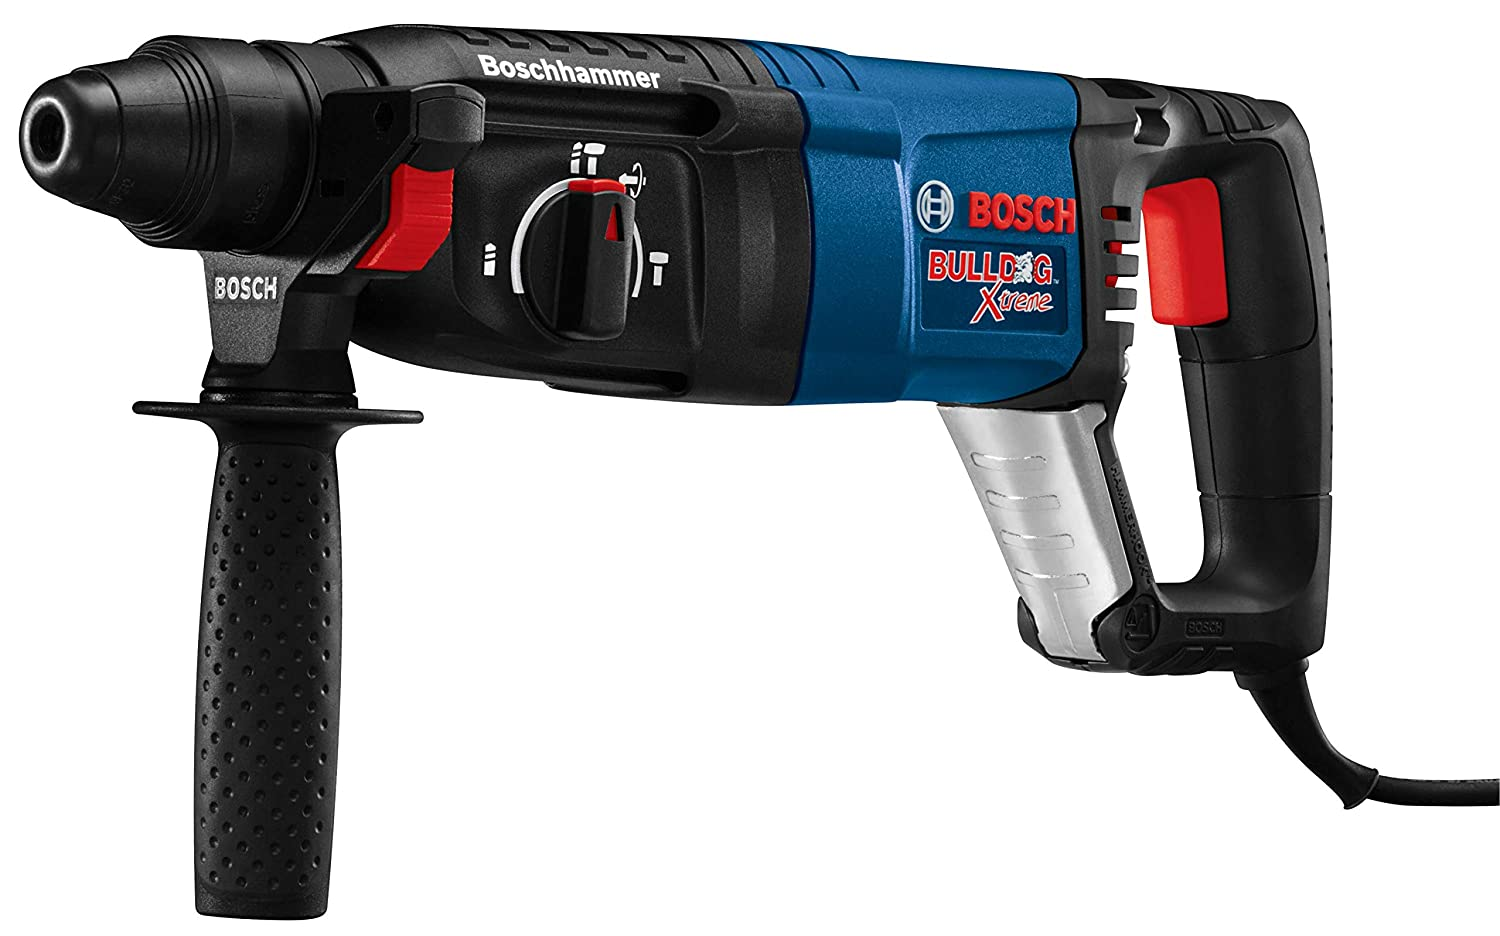 Bosch 11255VSR Bulldog Xtreme – 8 Amp 1 in. Corded Variable Speed Sds-Plus Concrete Masonry Rotary Hammer Power Drill with Carrying Case